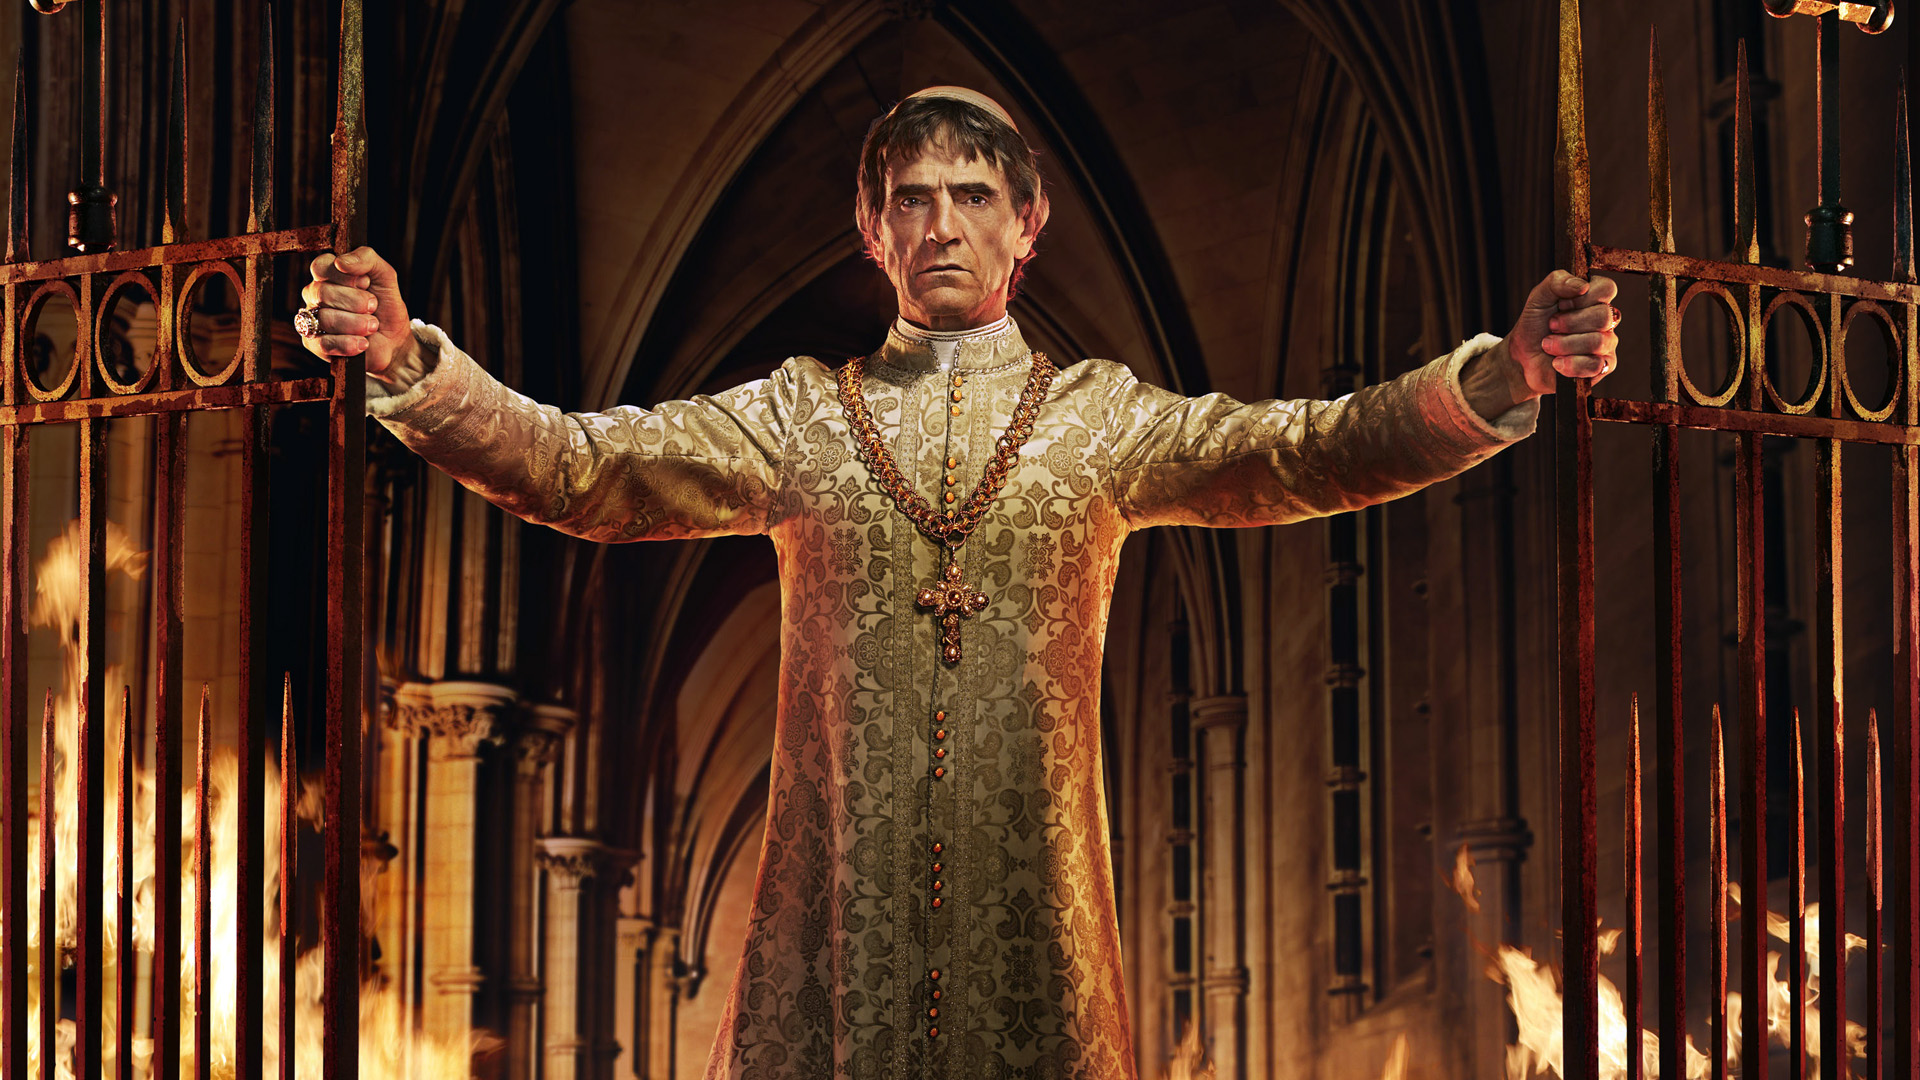 Jeremy Irons as Rodrigo Borgia in 'The Borgias' (Photo: Showtime)